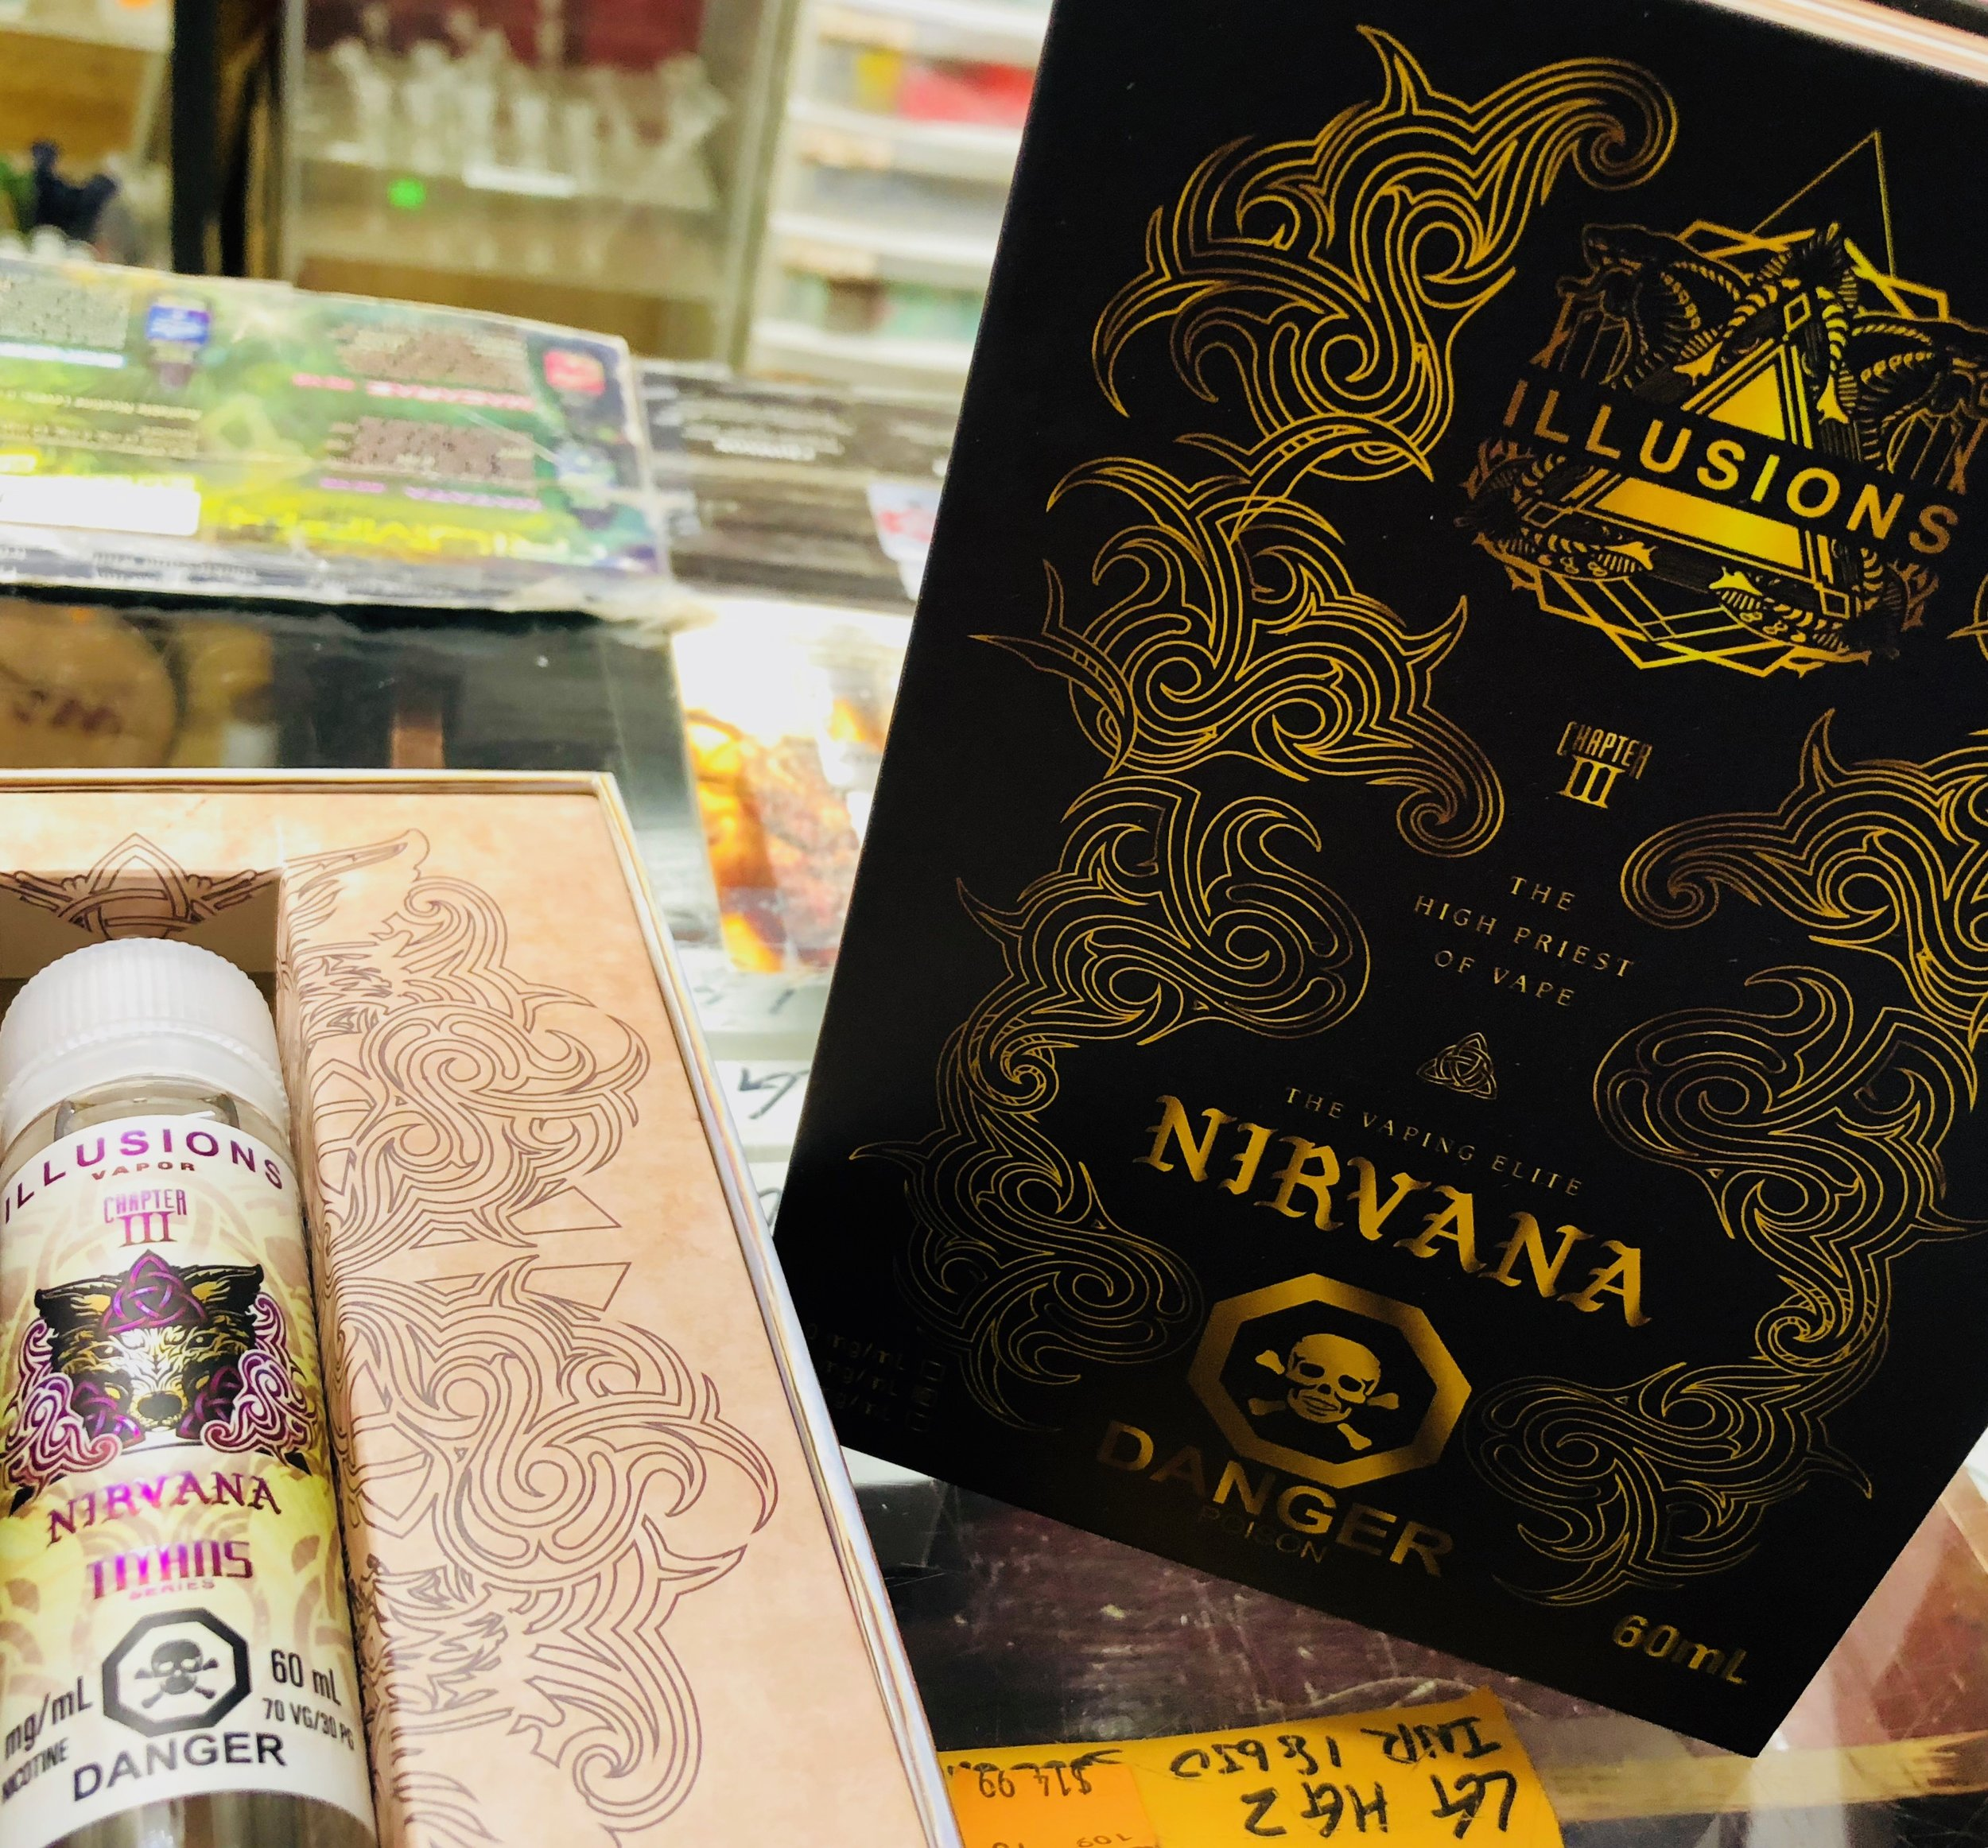 New Illusions Nirvana $29.99 for 60ml